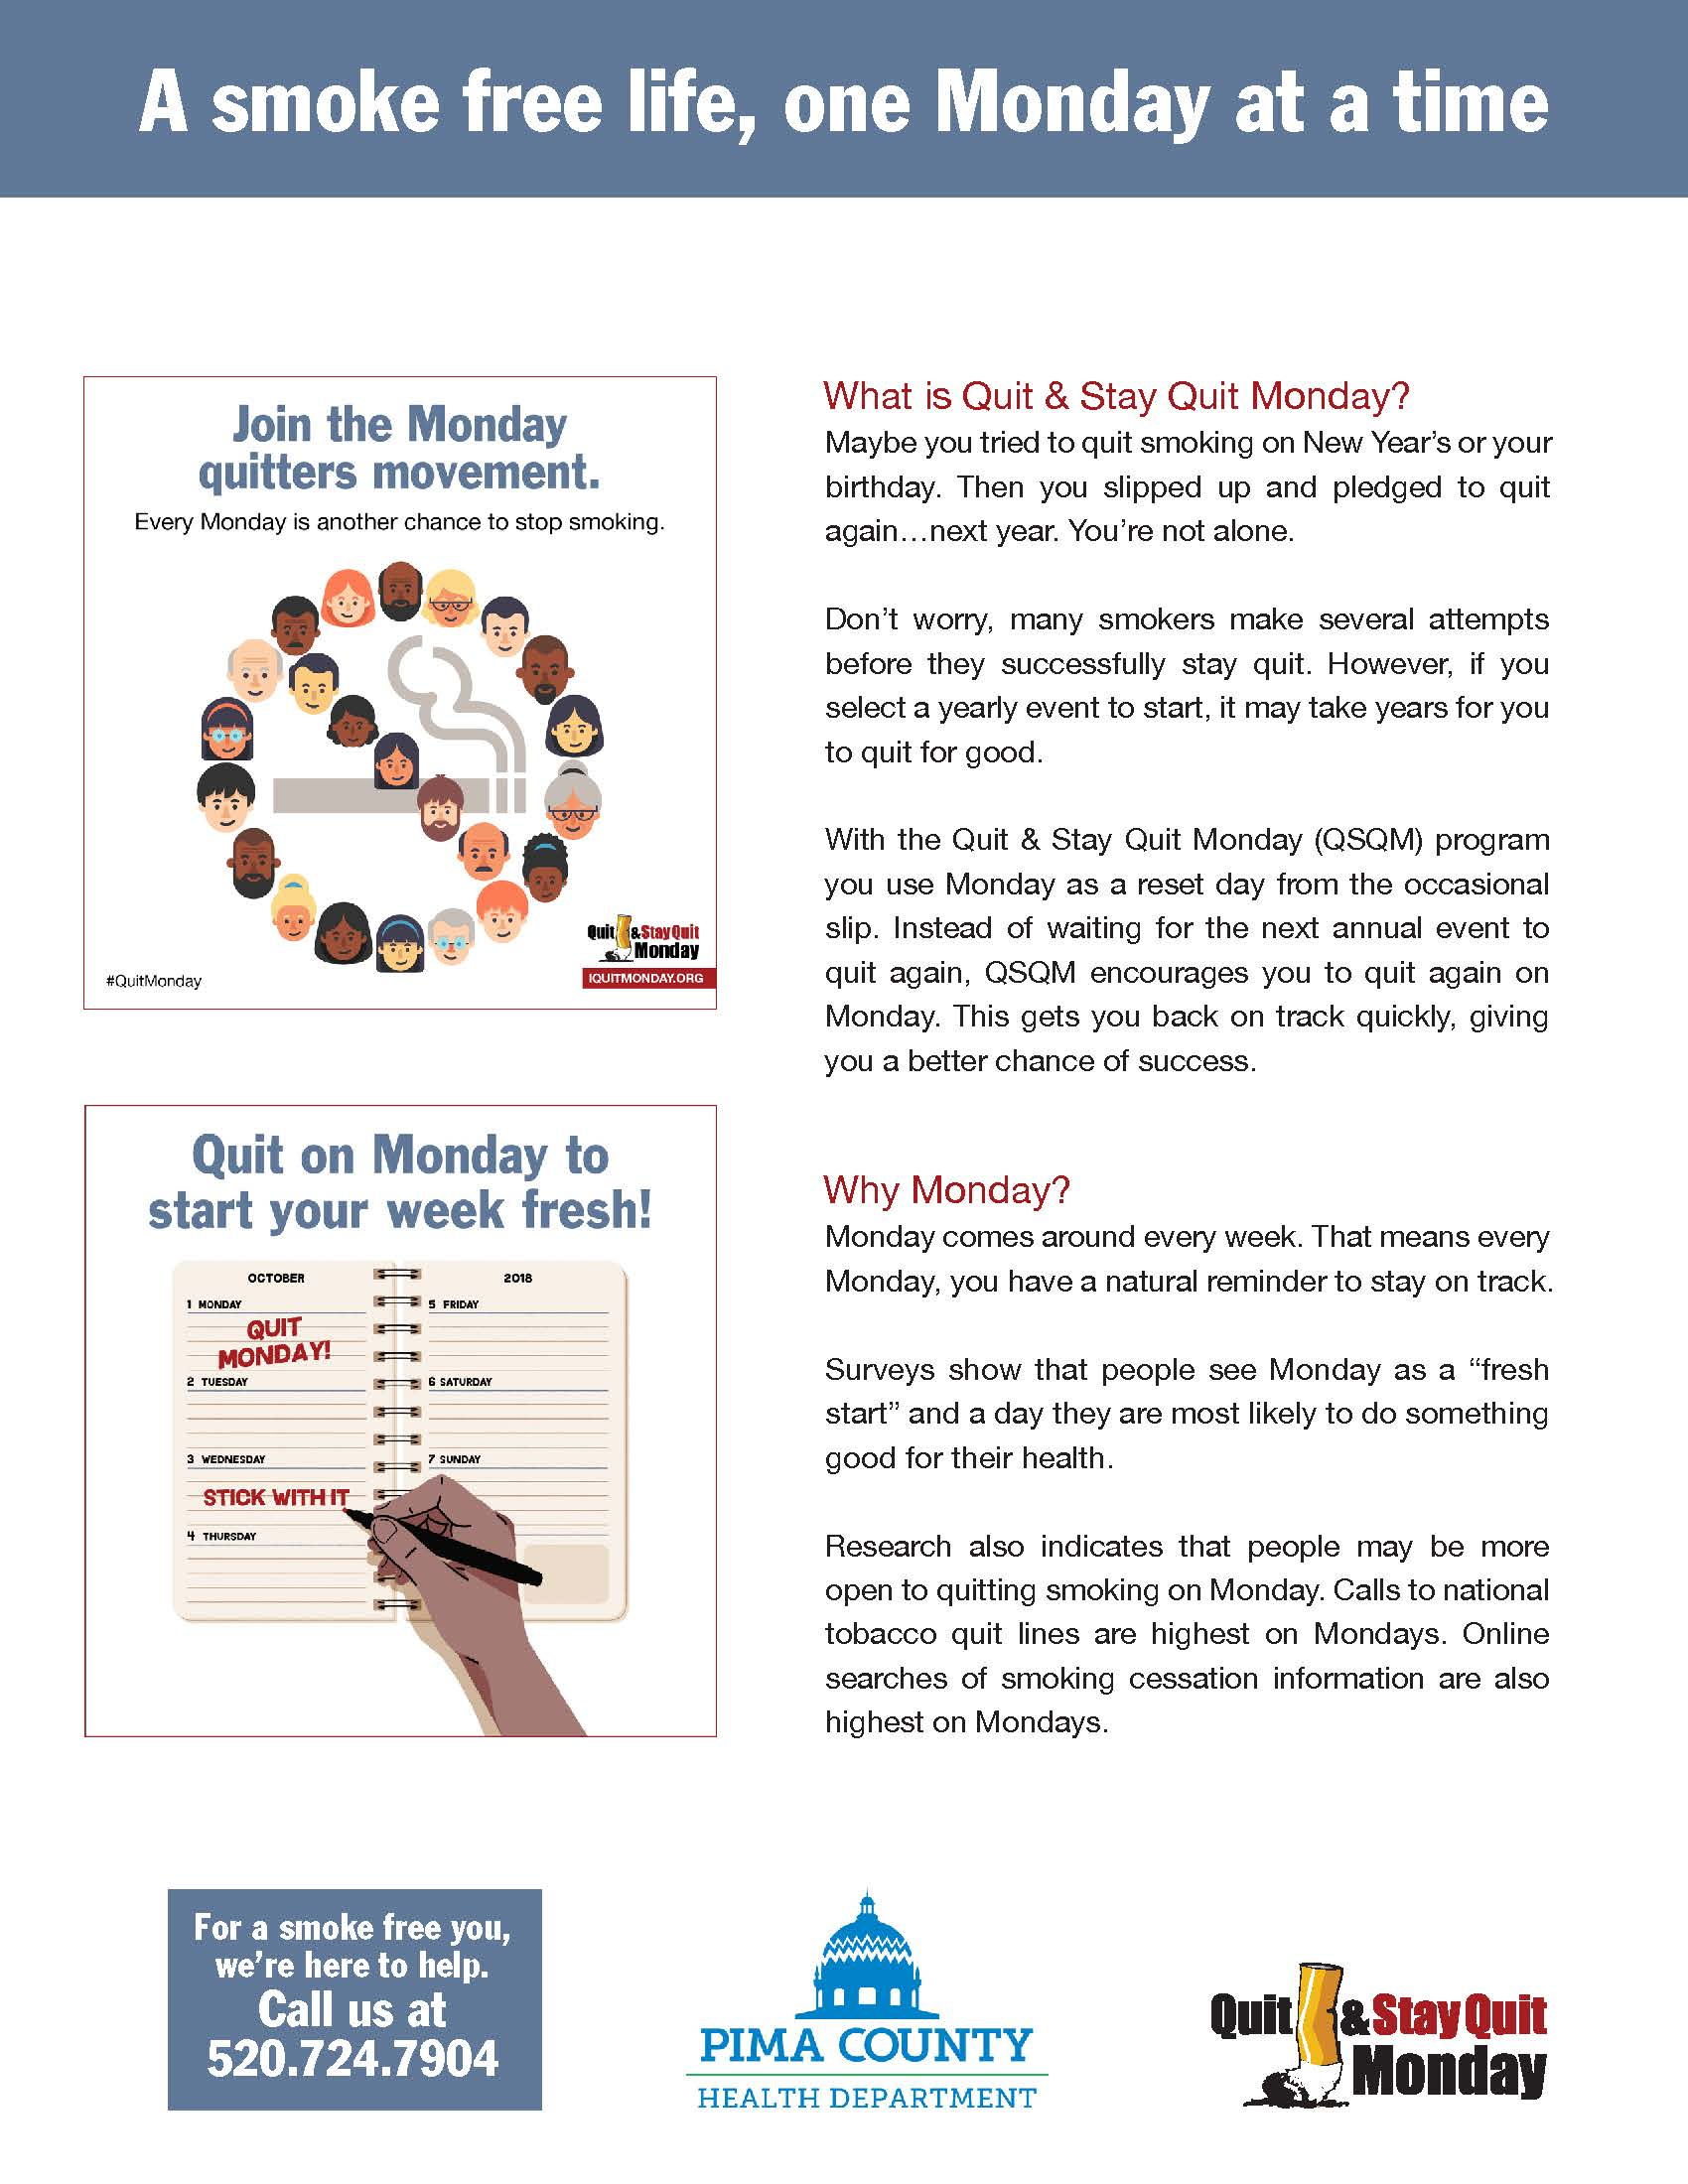 About the quit and stay quit monday strategy